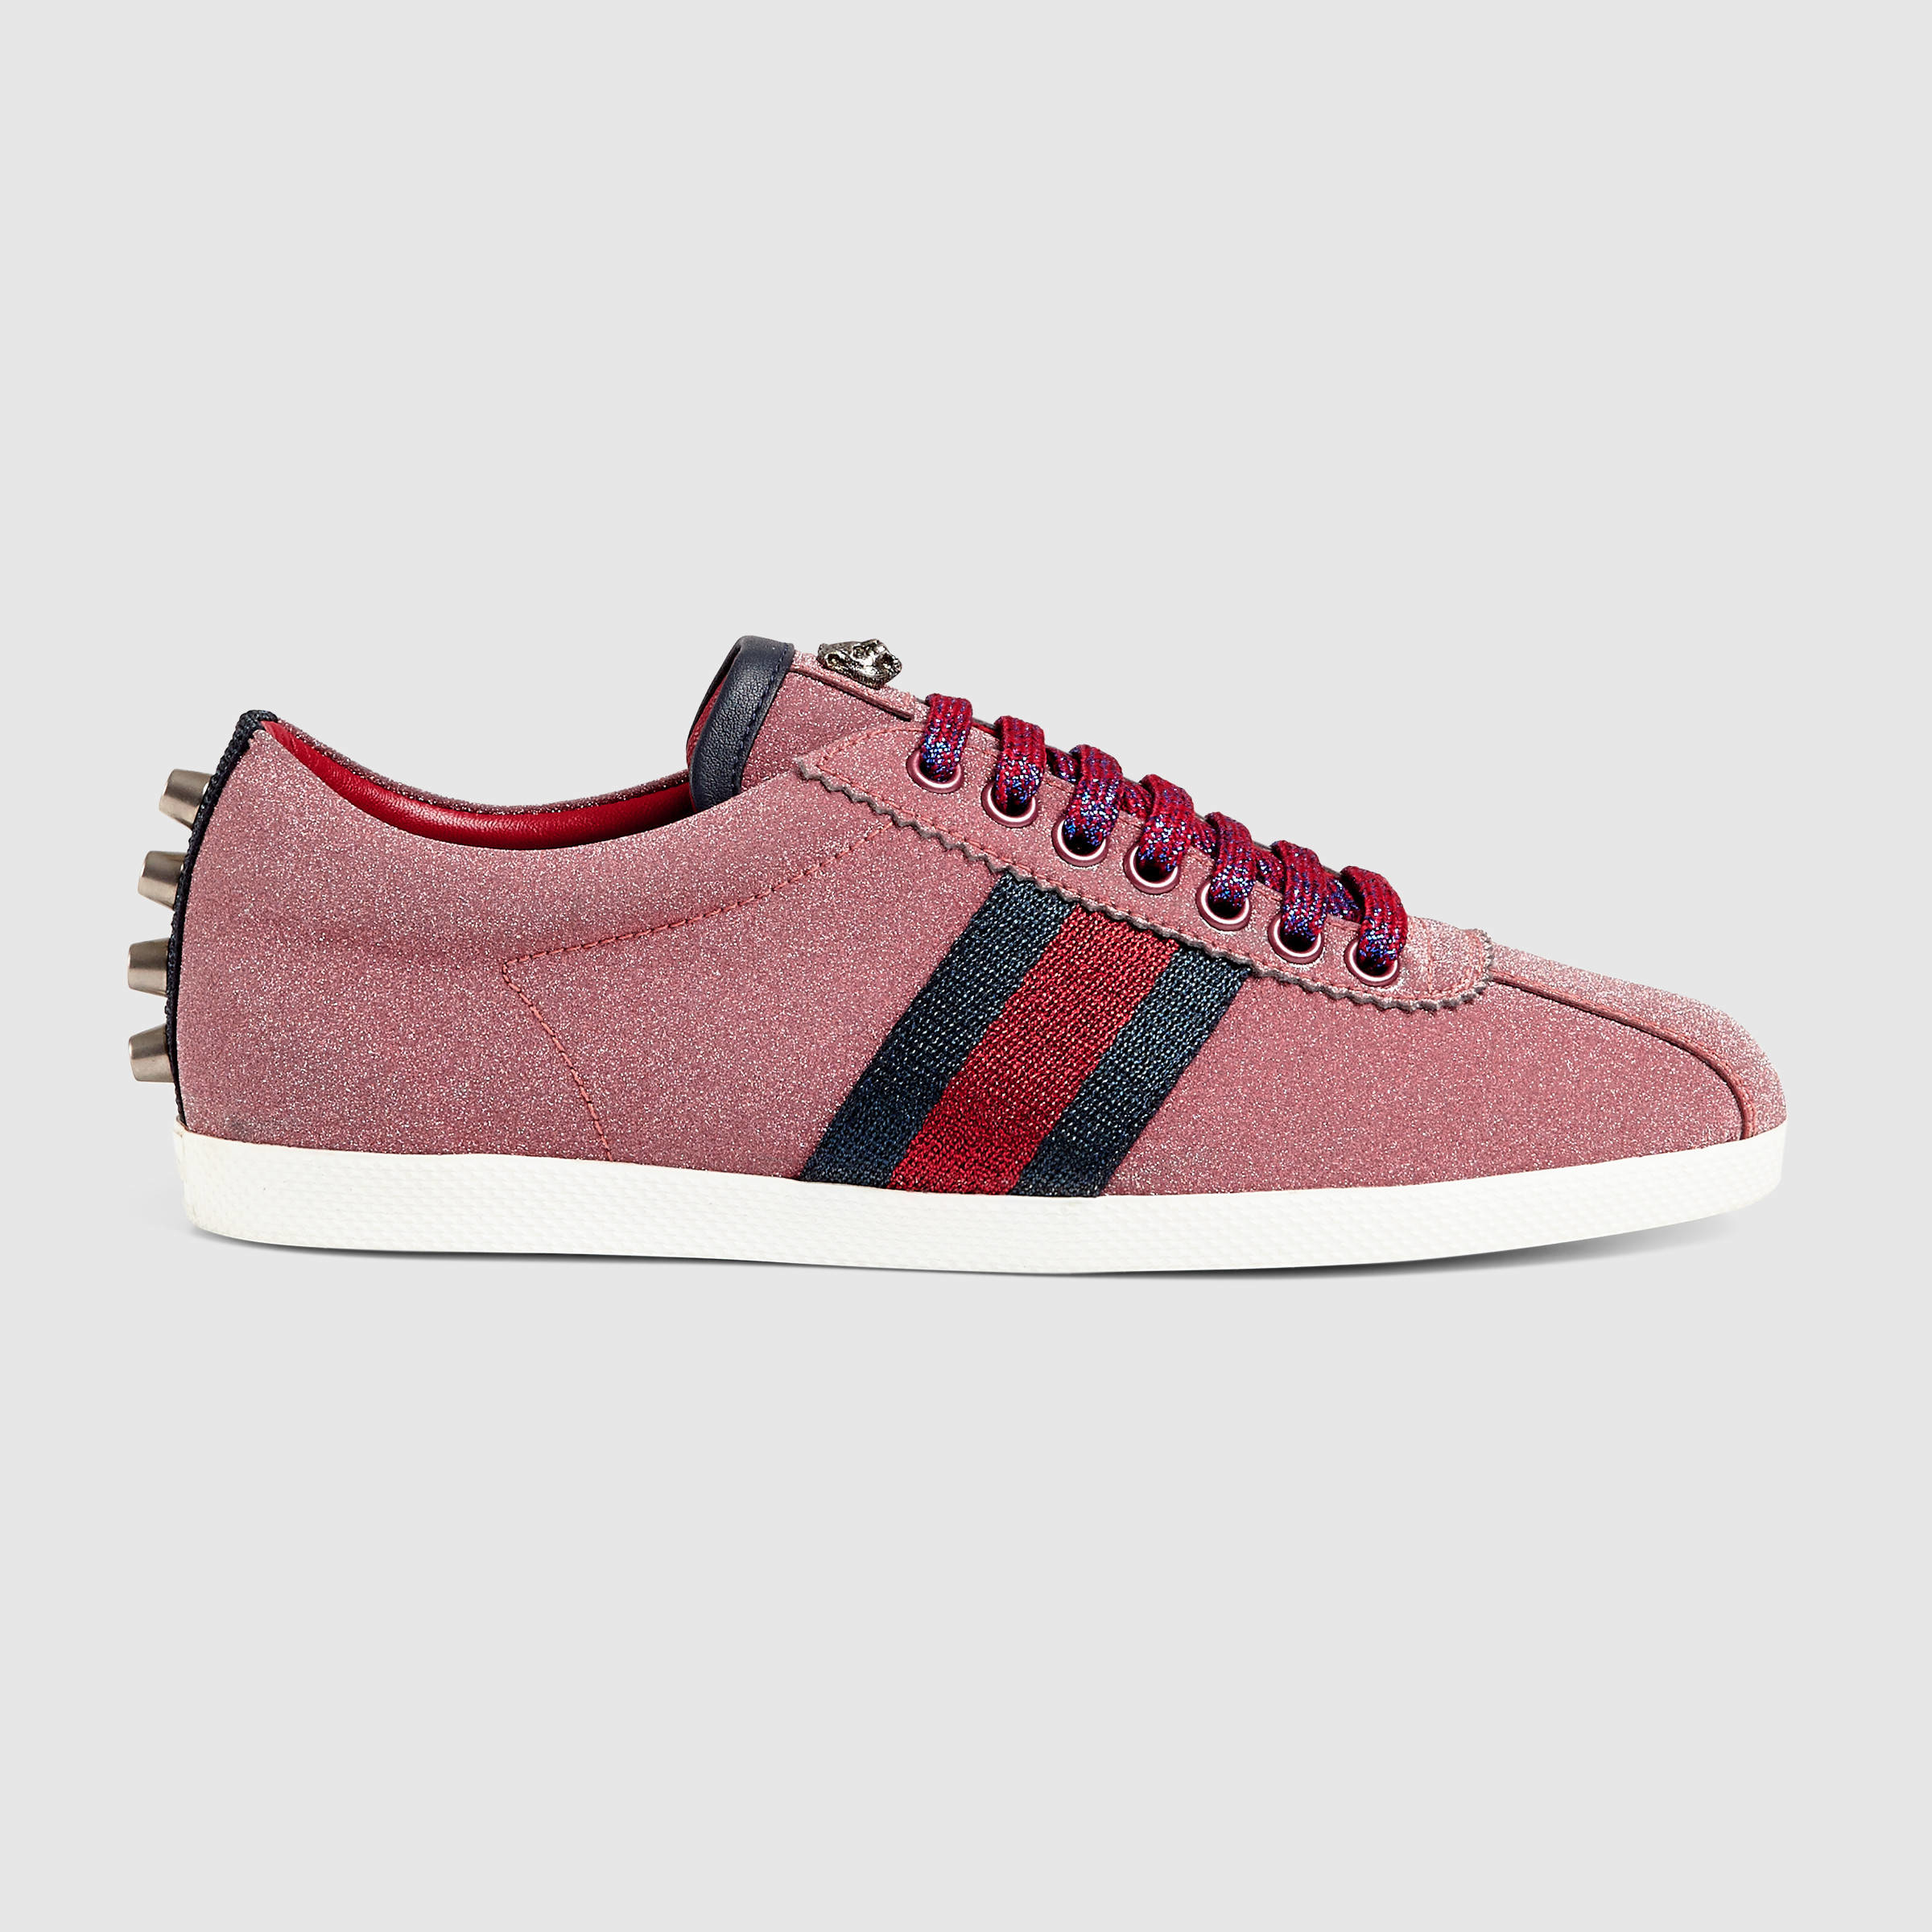 Gucci Mens Shoes Red High Top Sneaker